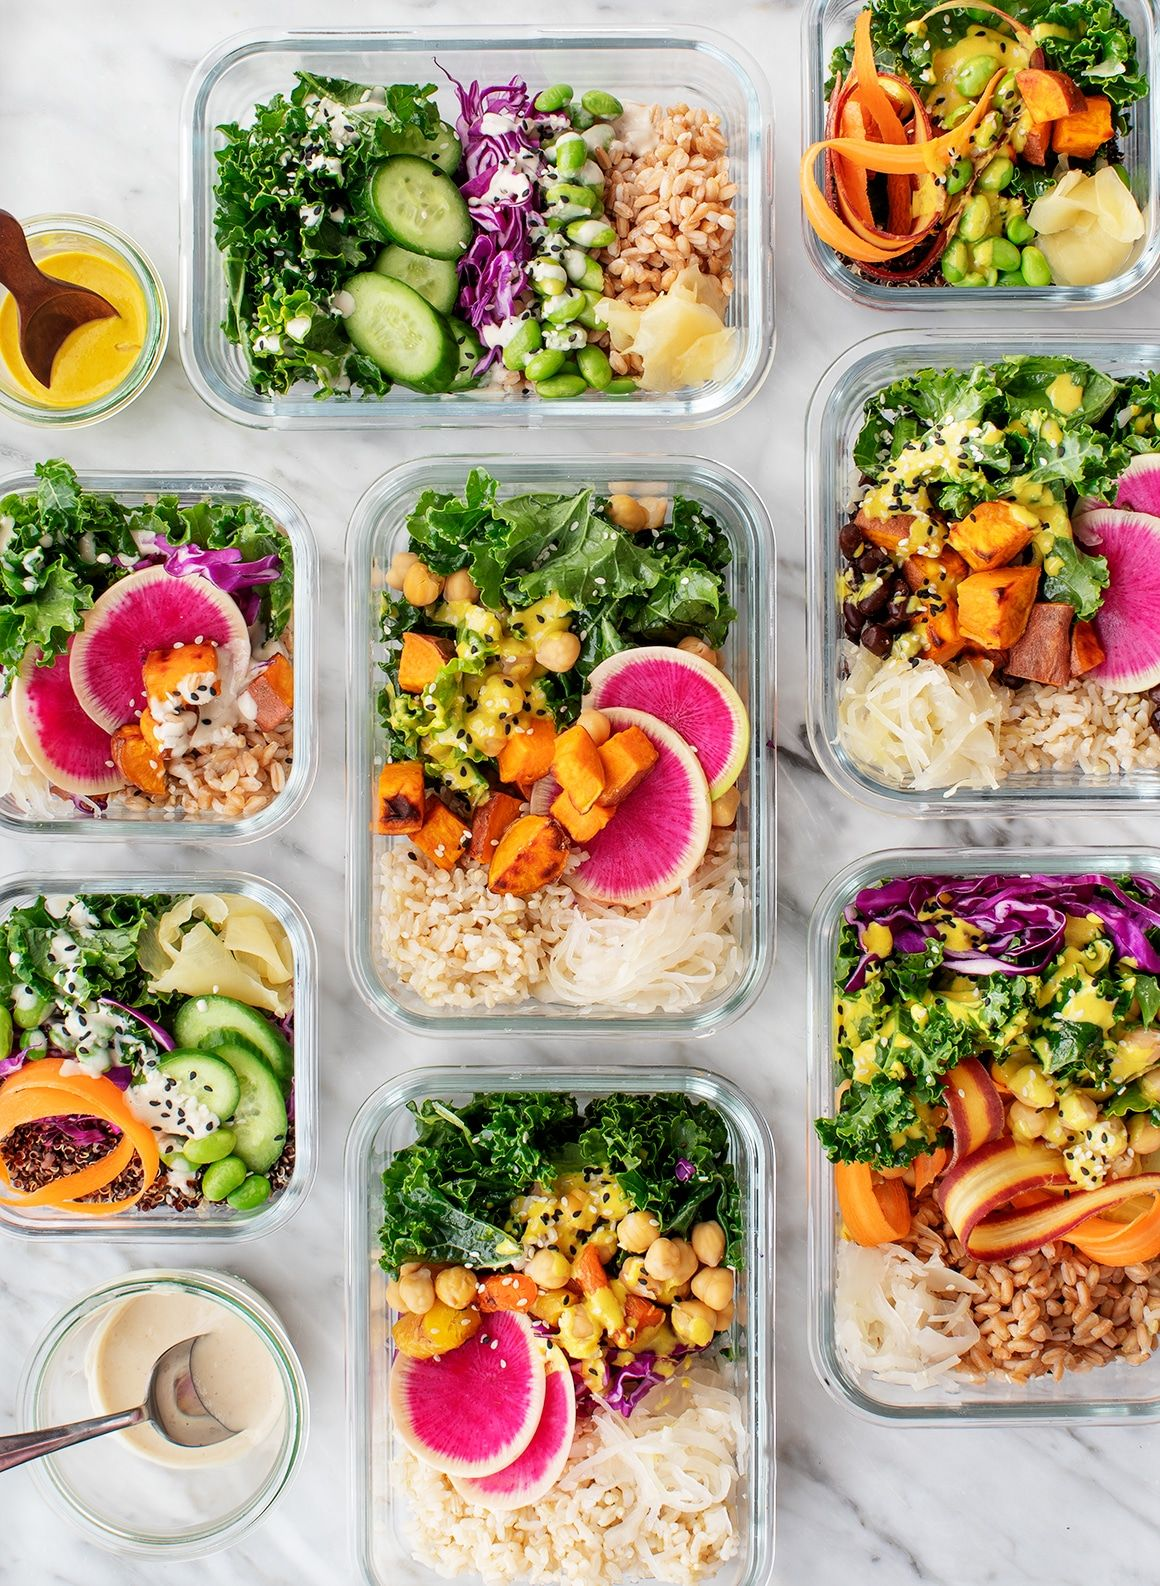 These Healthy Lunch Ideas Are Easy To Take To Work They Re Packable And Taste Great Throughout The Week Lunch Recipes Healthy Healthy Lunch Healthy Meal Prep